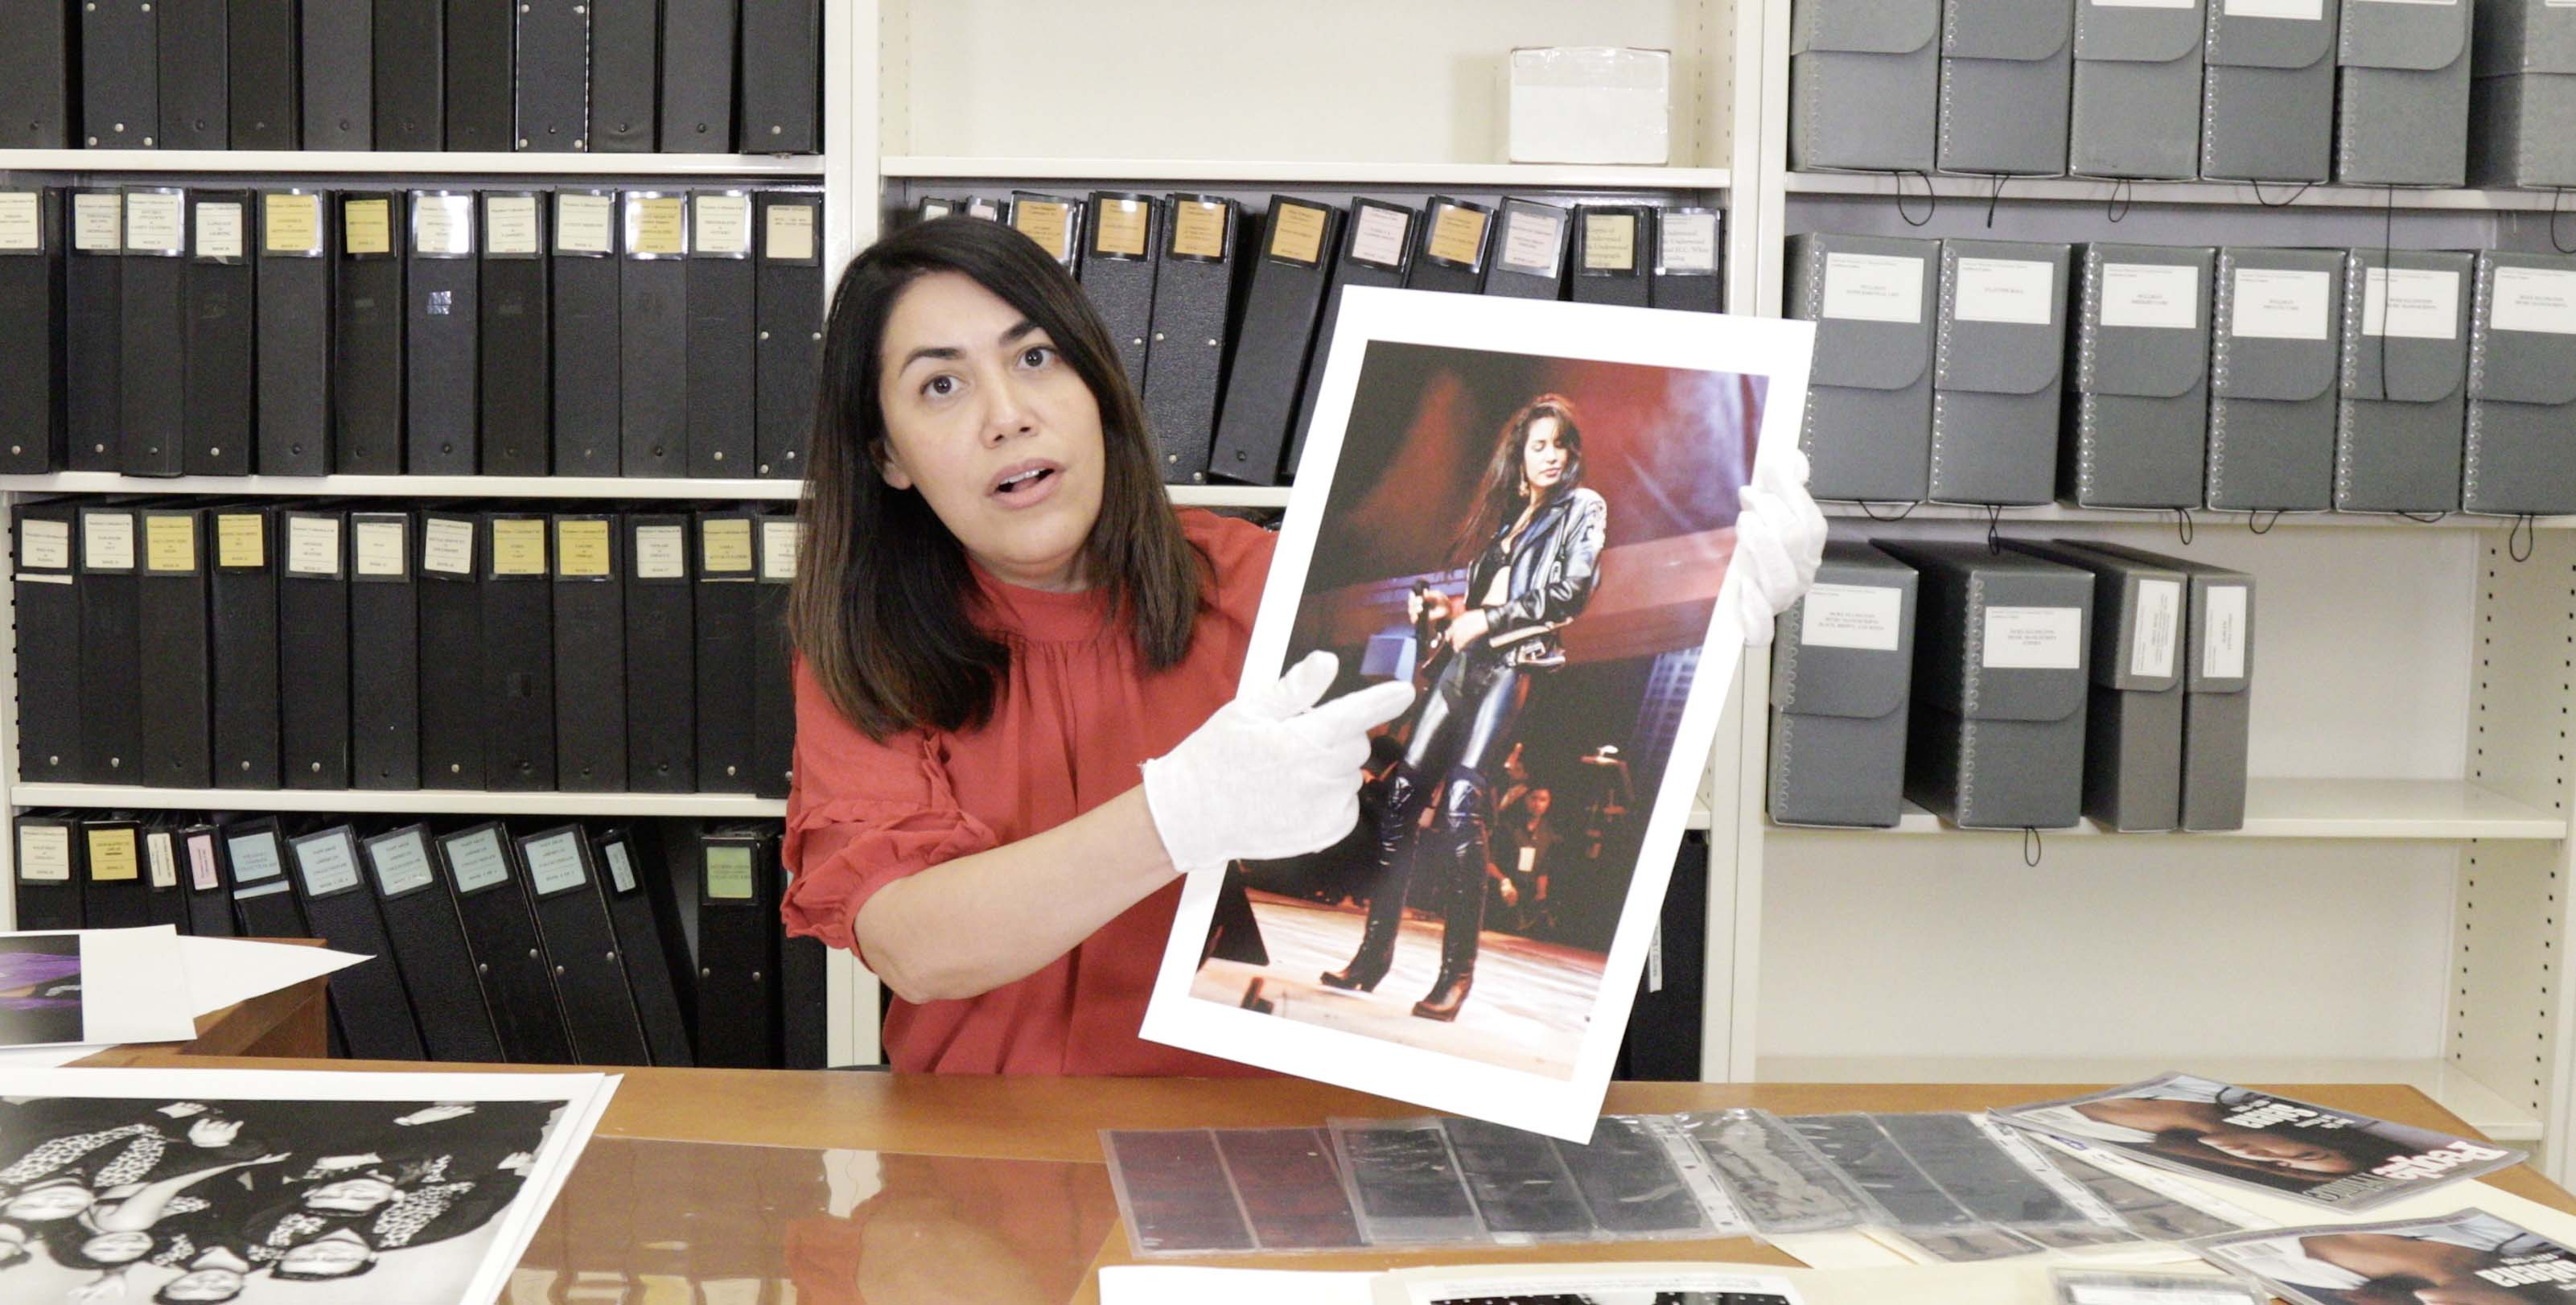 Curator holds photograph of Selena Quintanilla in leather performance outfit